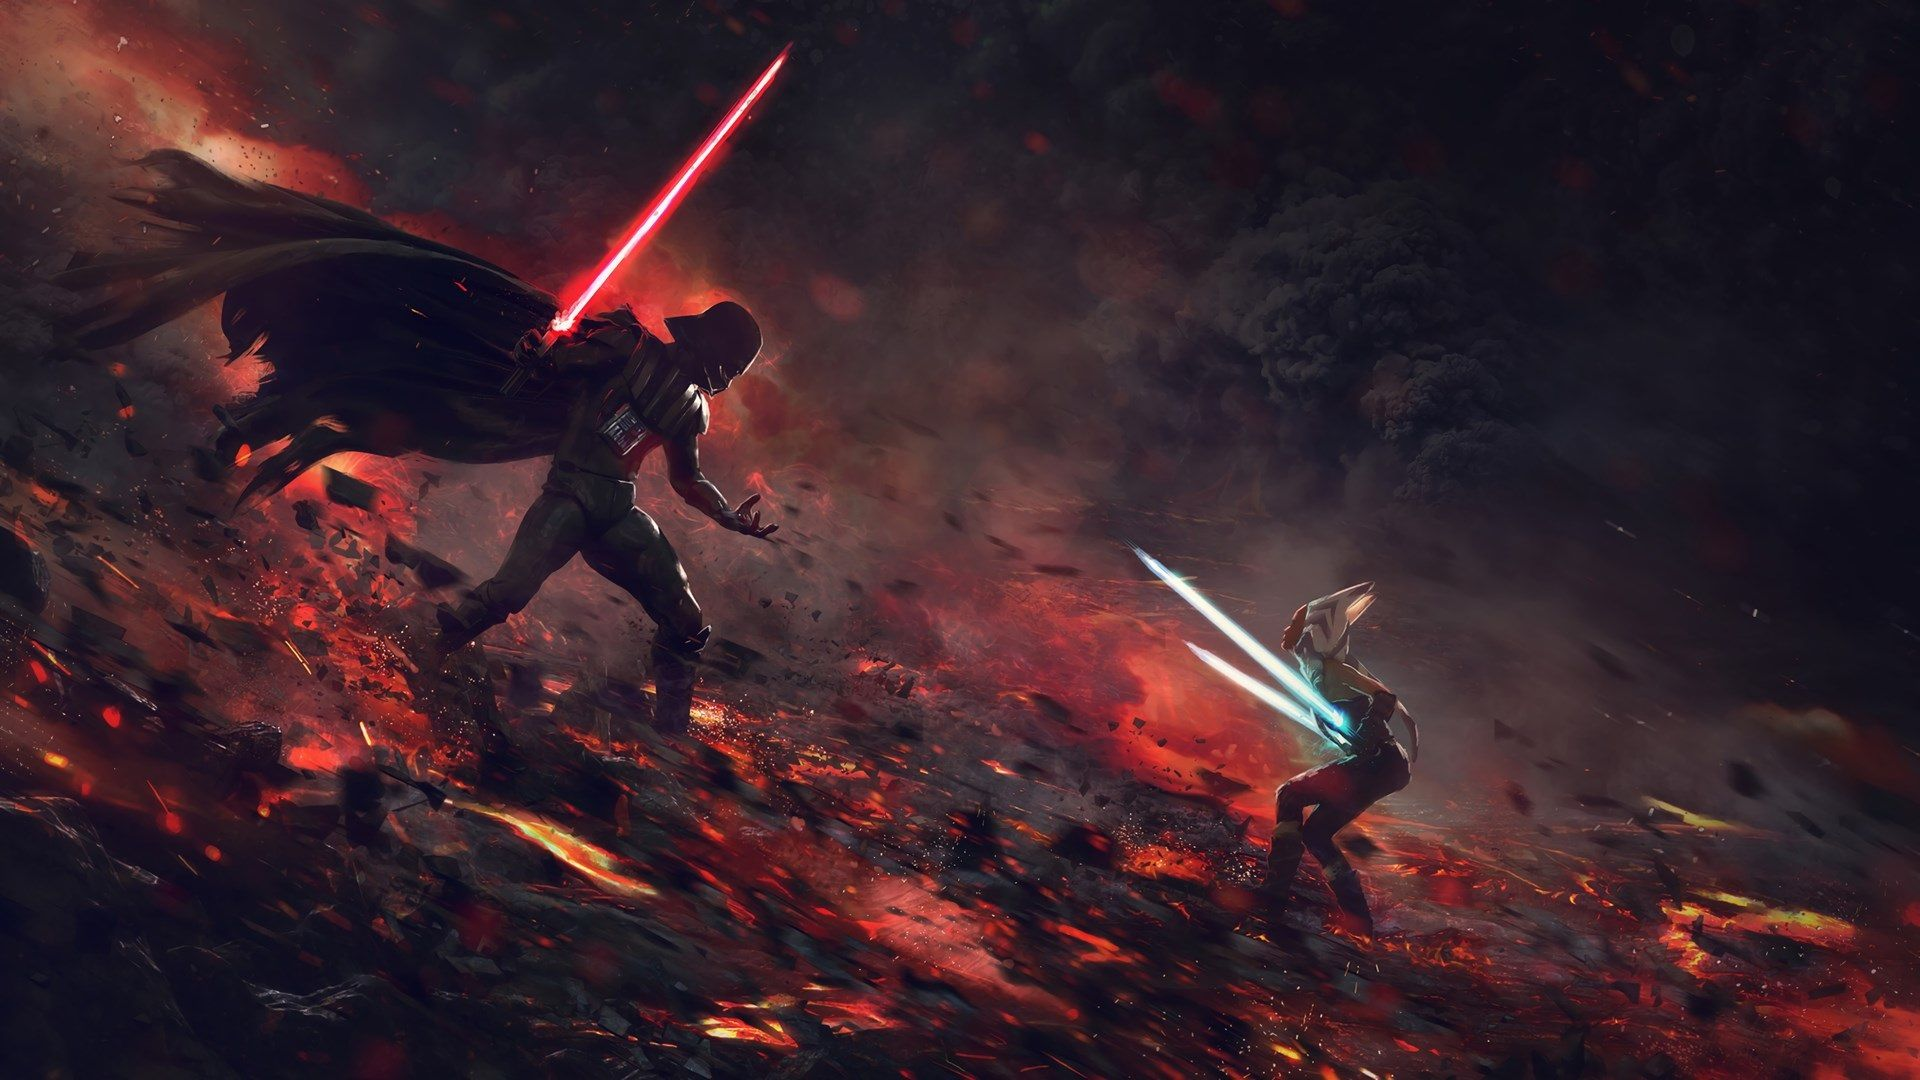 1920x1080 Star Wars Download Hd Wallpaper For Desktop Star Wars Wallpaper Darth Vader Vs Ahsoka Darth Vader Wallpaper